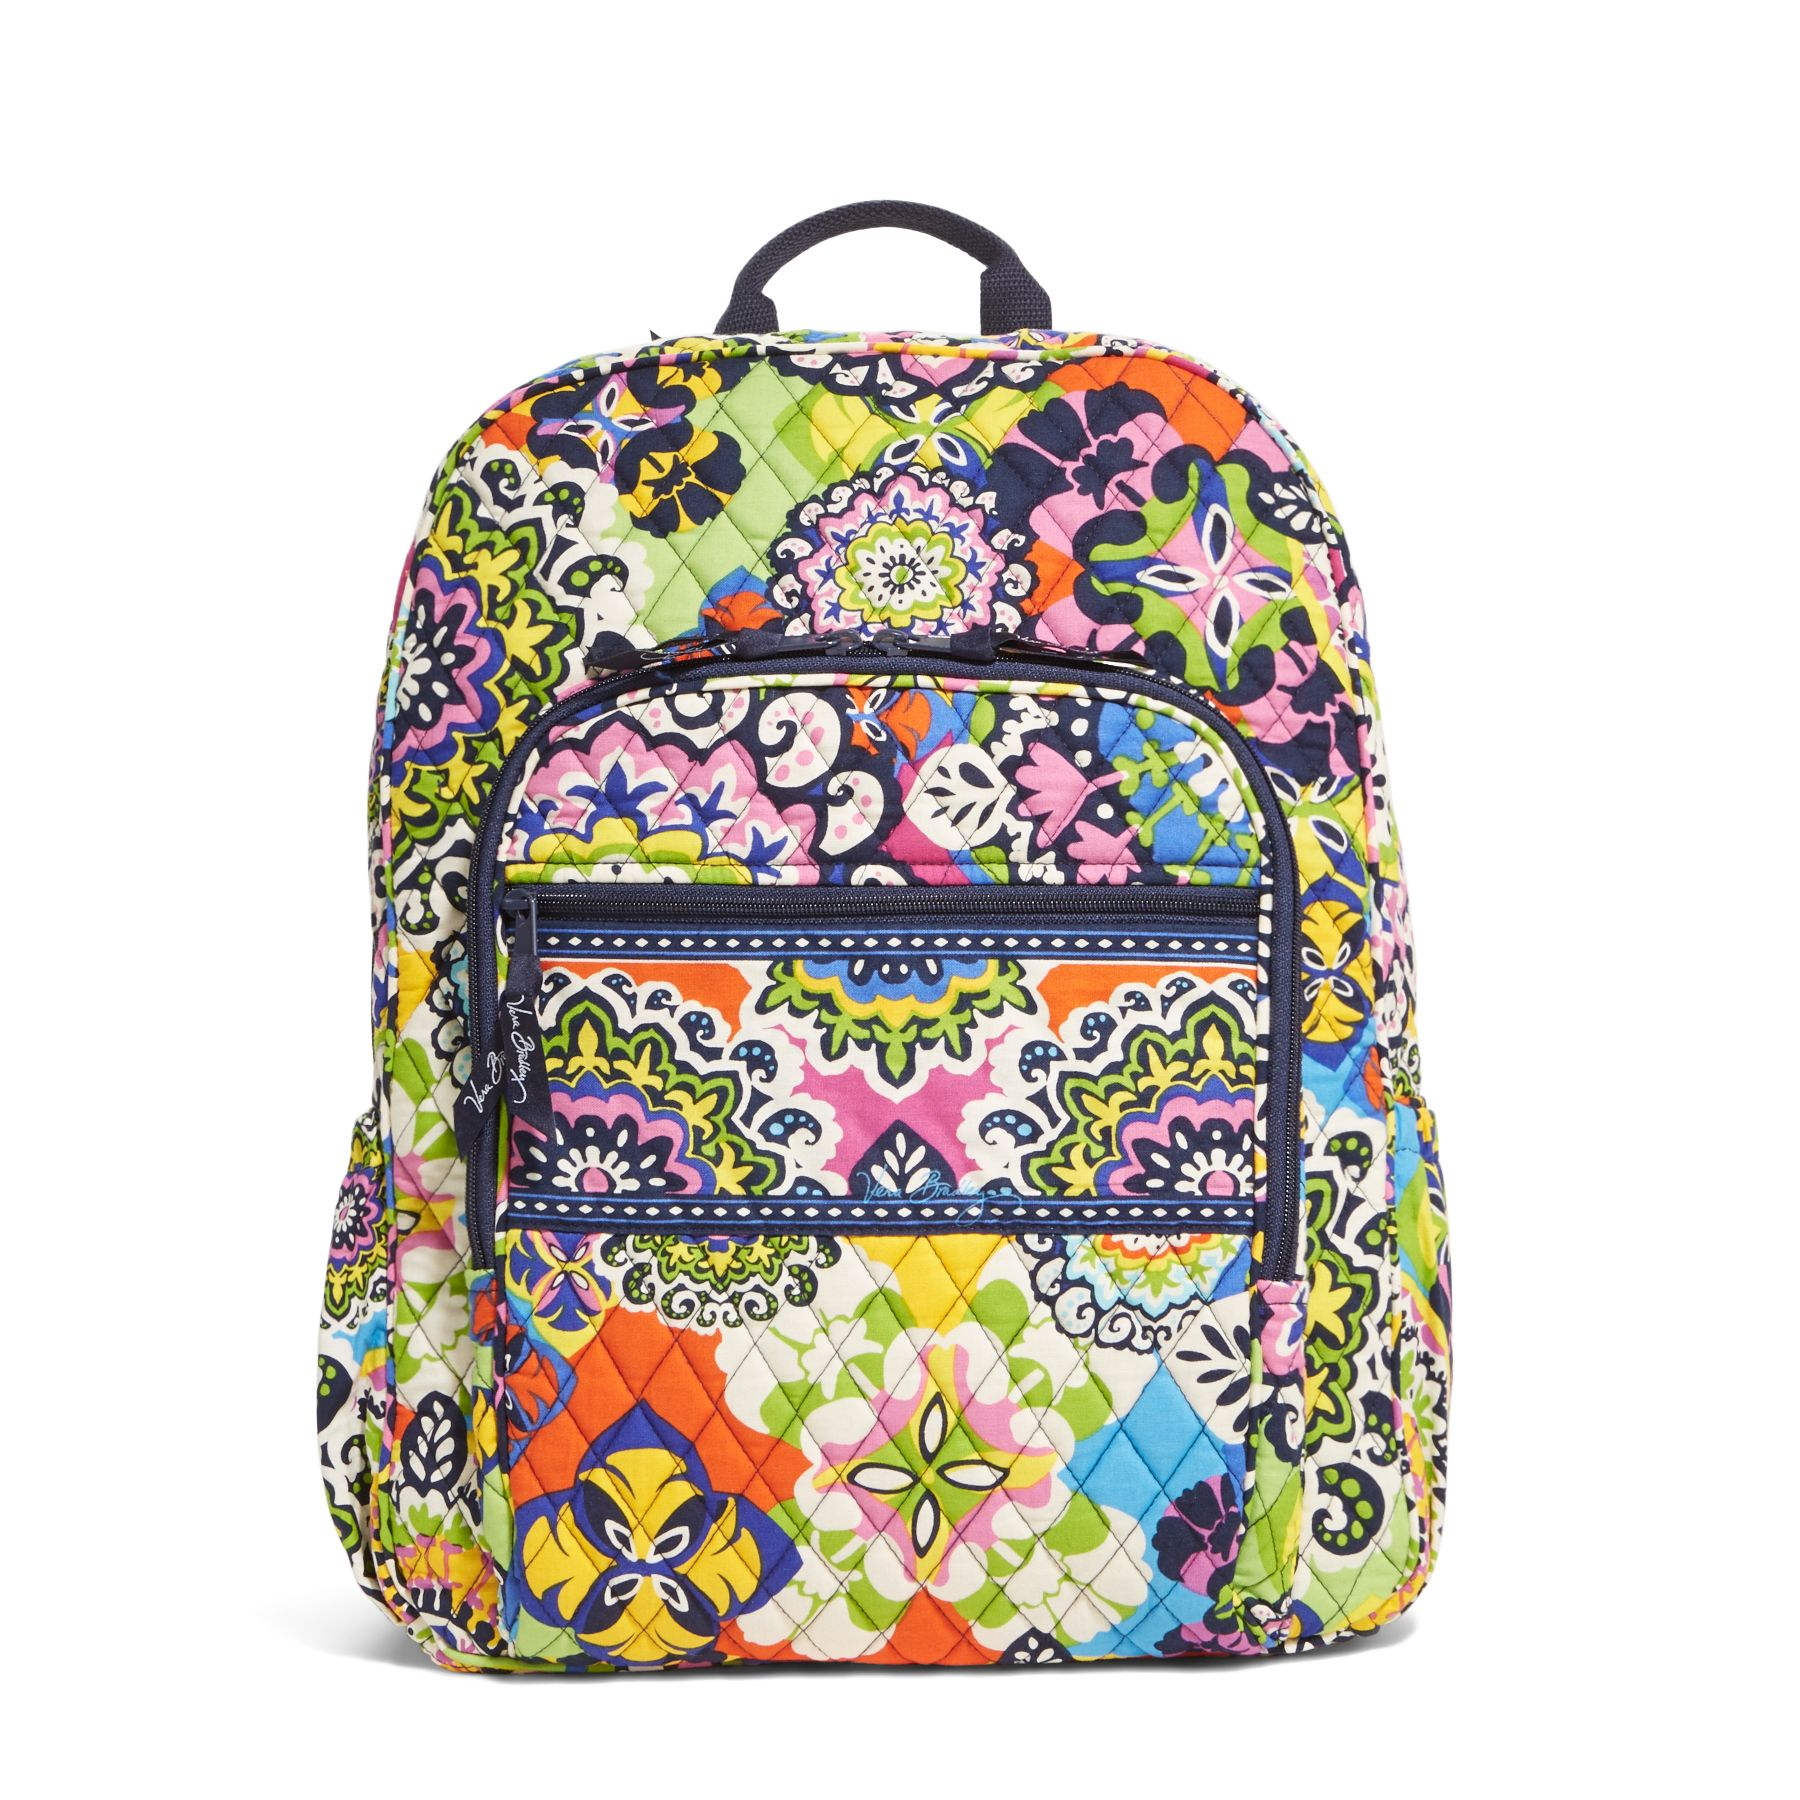 Shop quilted bags and backpacks from Vera Bradley. In exclusive patterns, our colorful products add organization and fun wherever you carry them.